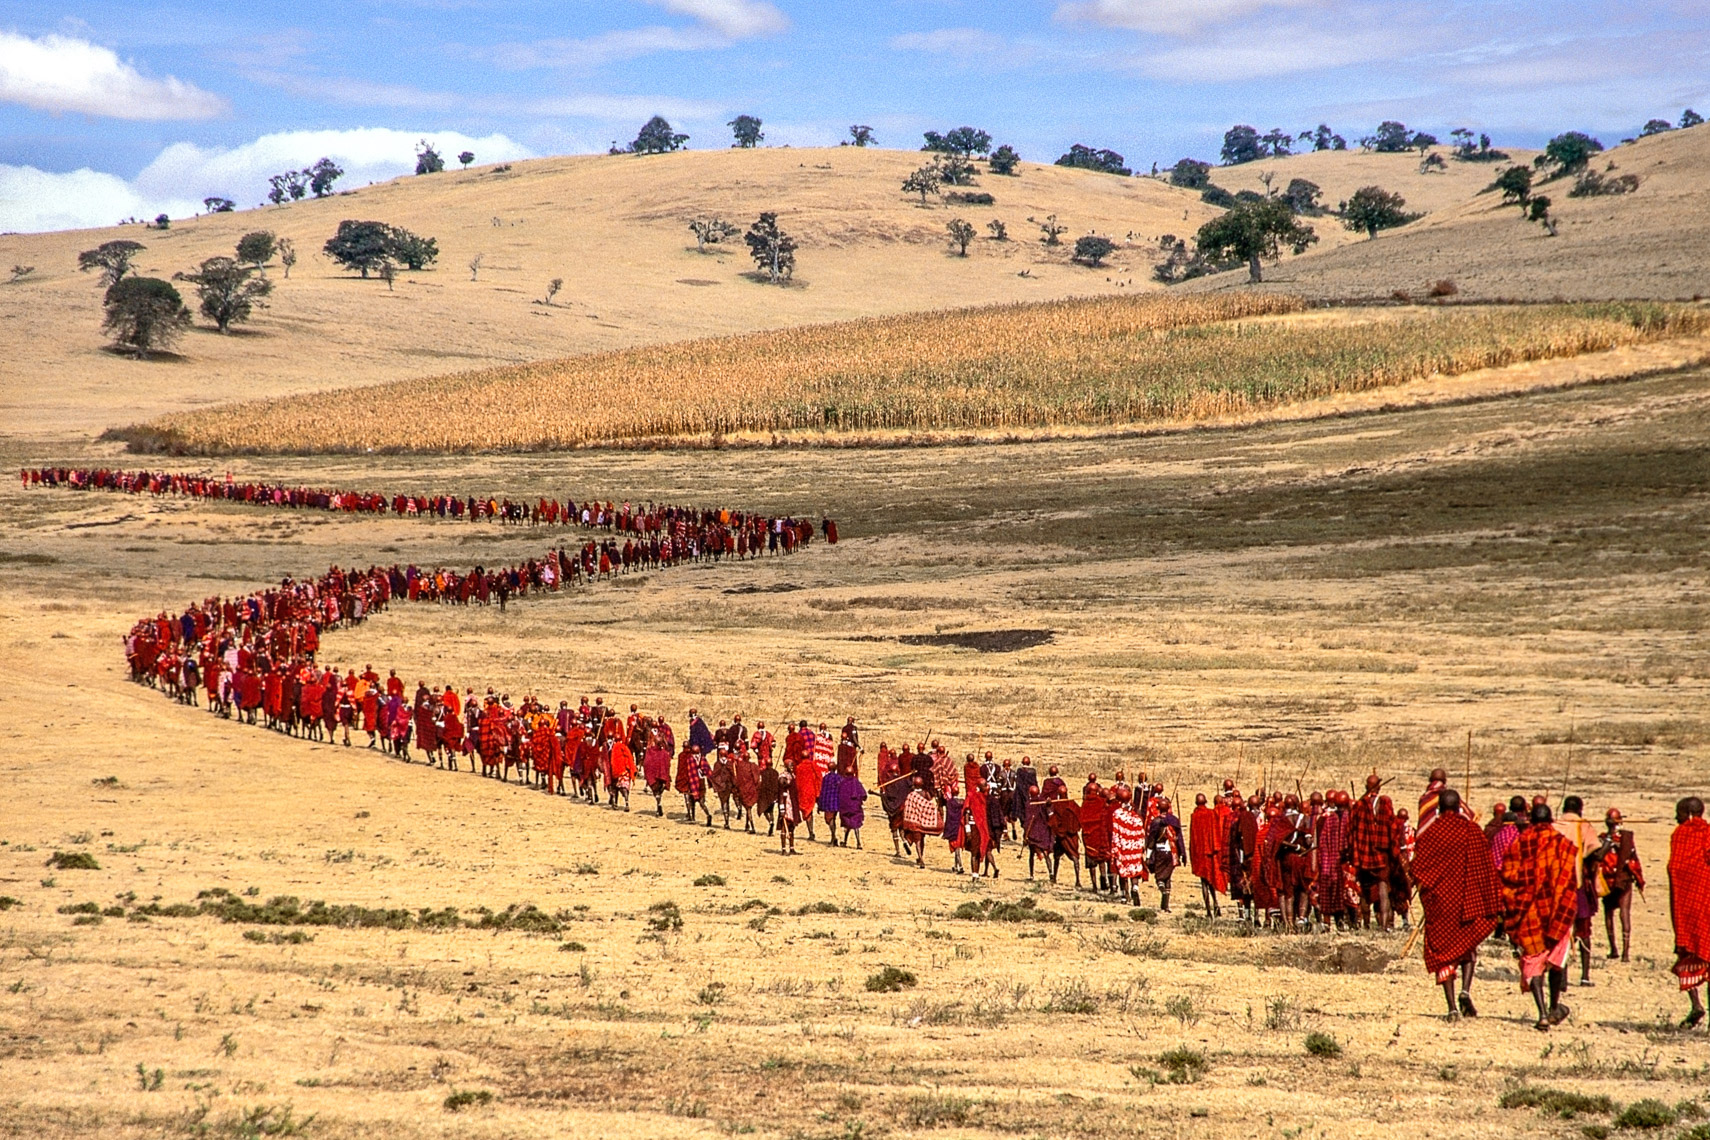 Salei Maasai Warriors approach the Ceremonial Manyatta, Tanzania